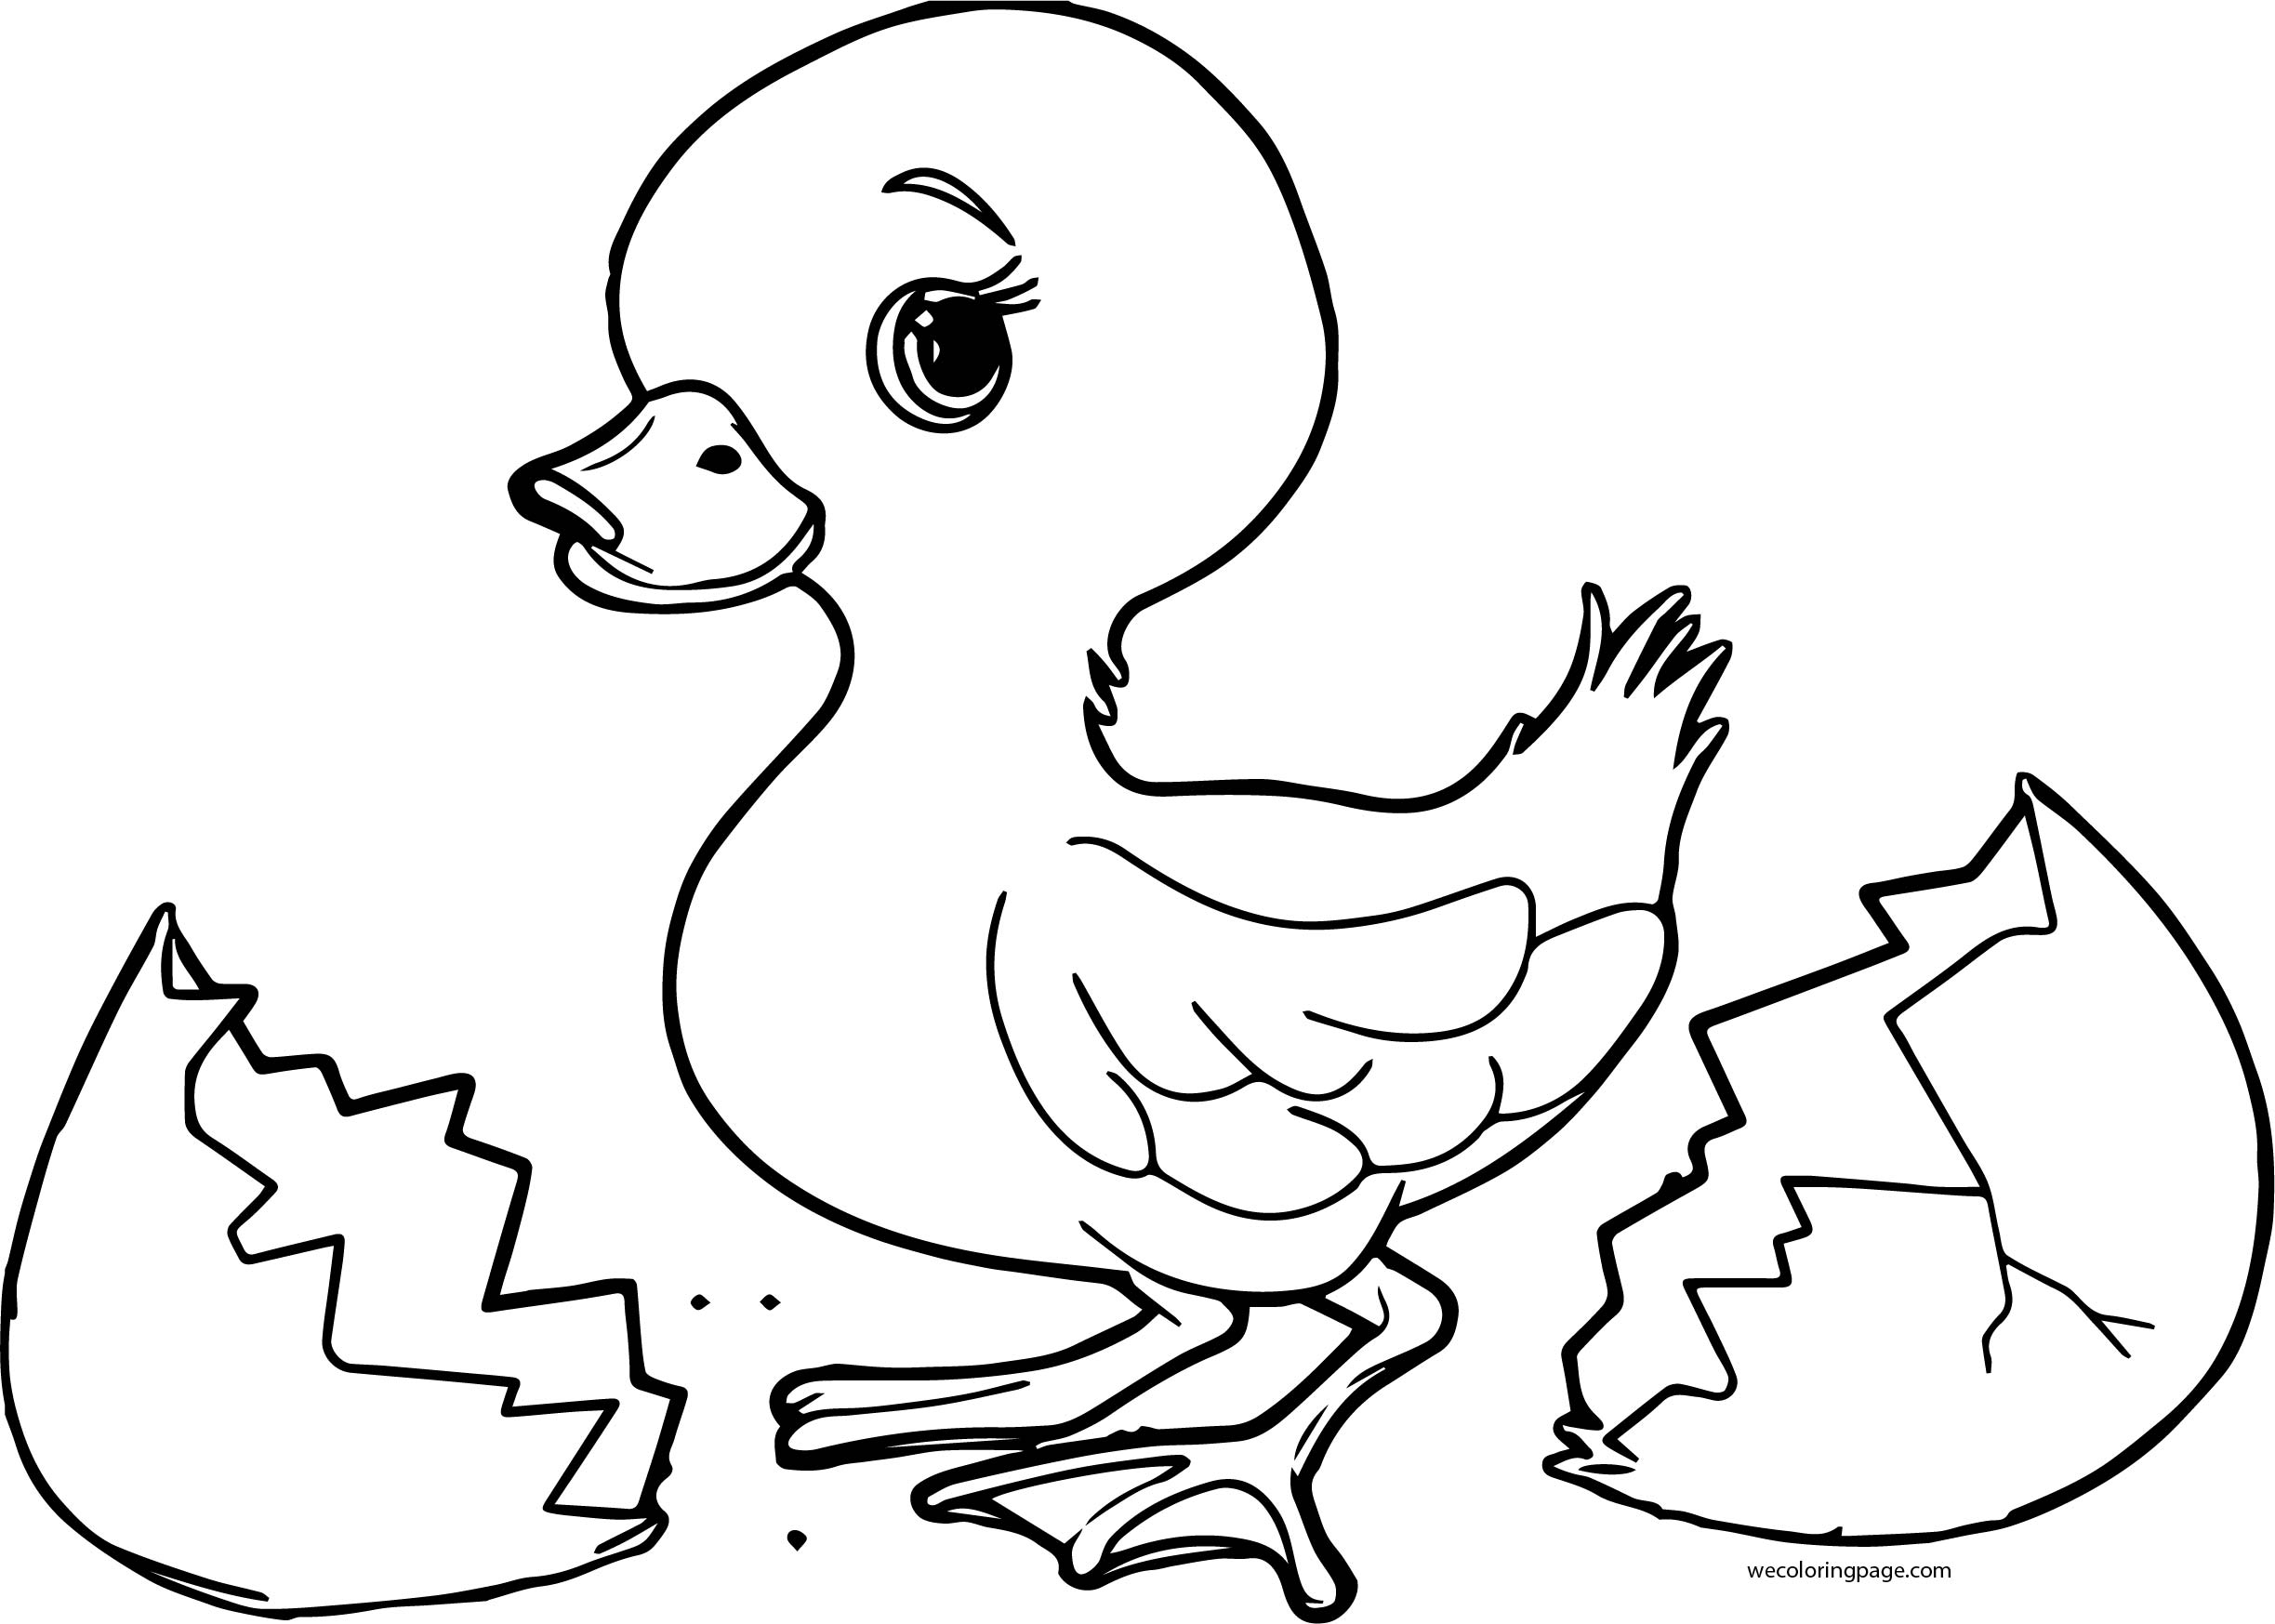 baby duck coloring pages cute baby duck wear a hat coloring pages coloring pages pages coloring baby duck